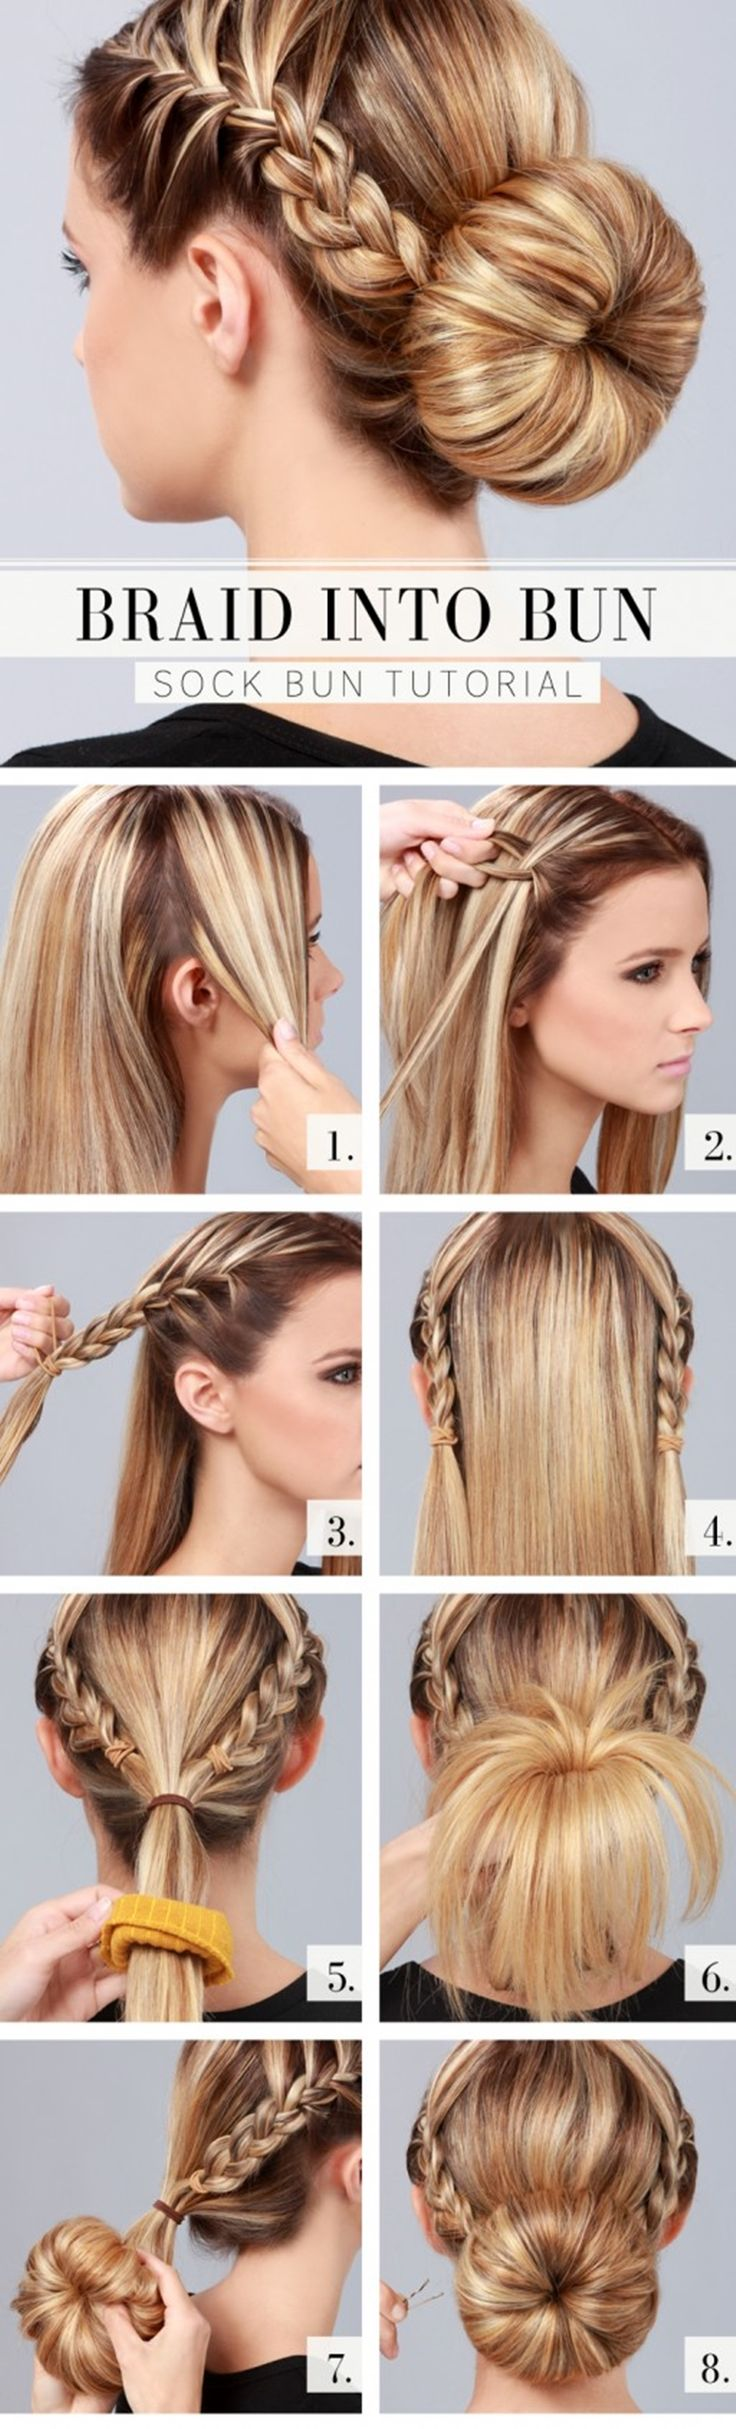 diy braids - Google Search